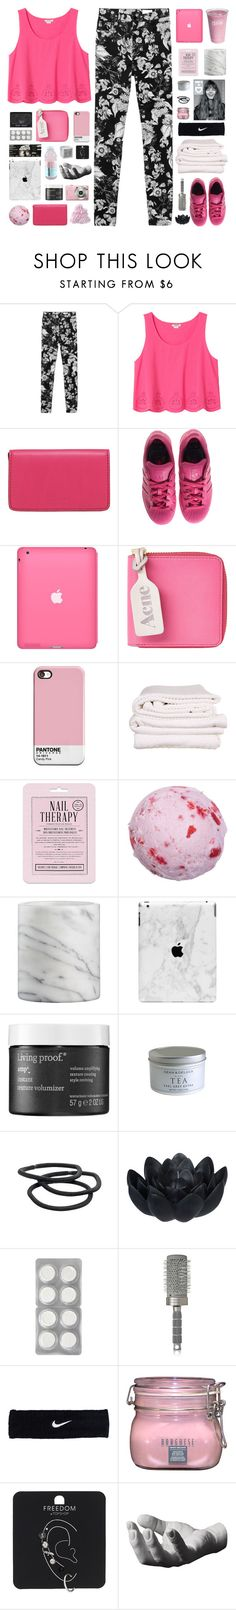 """three more days :)"" by via-m ❤ liked on Polyvore featuring Monki, Lodis, adidas, Acne Studios, Brahms Mount, Love 21, Crate and Barrel, Living Proof, Goody and Sia"